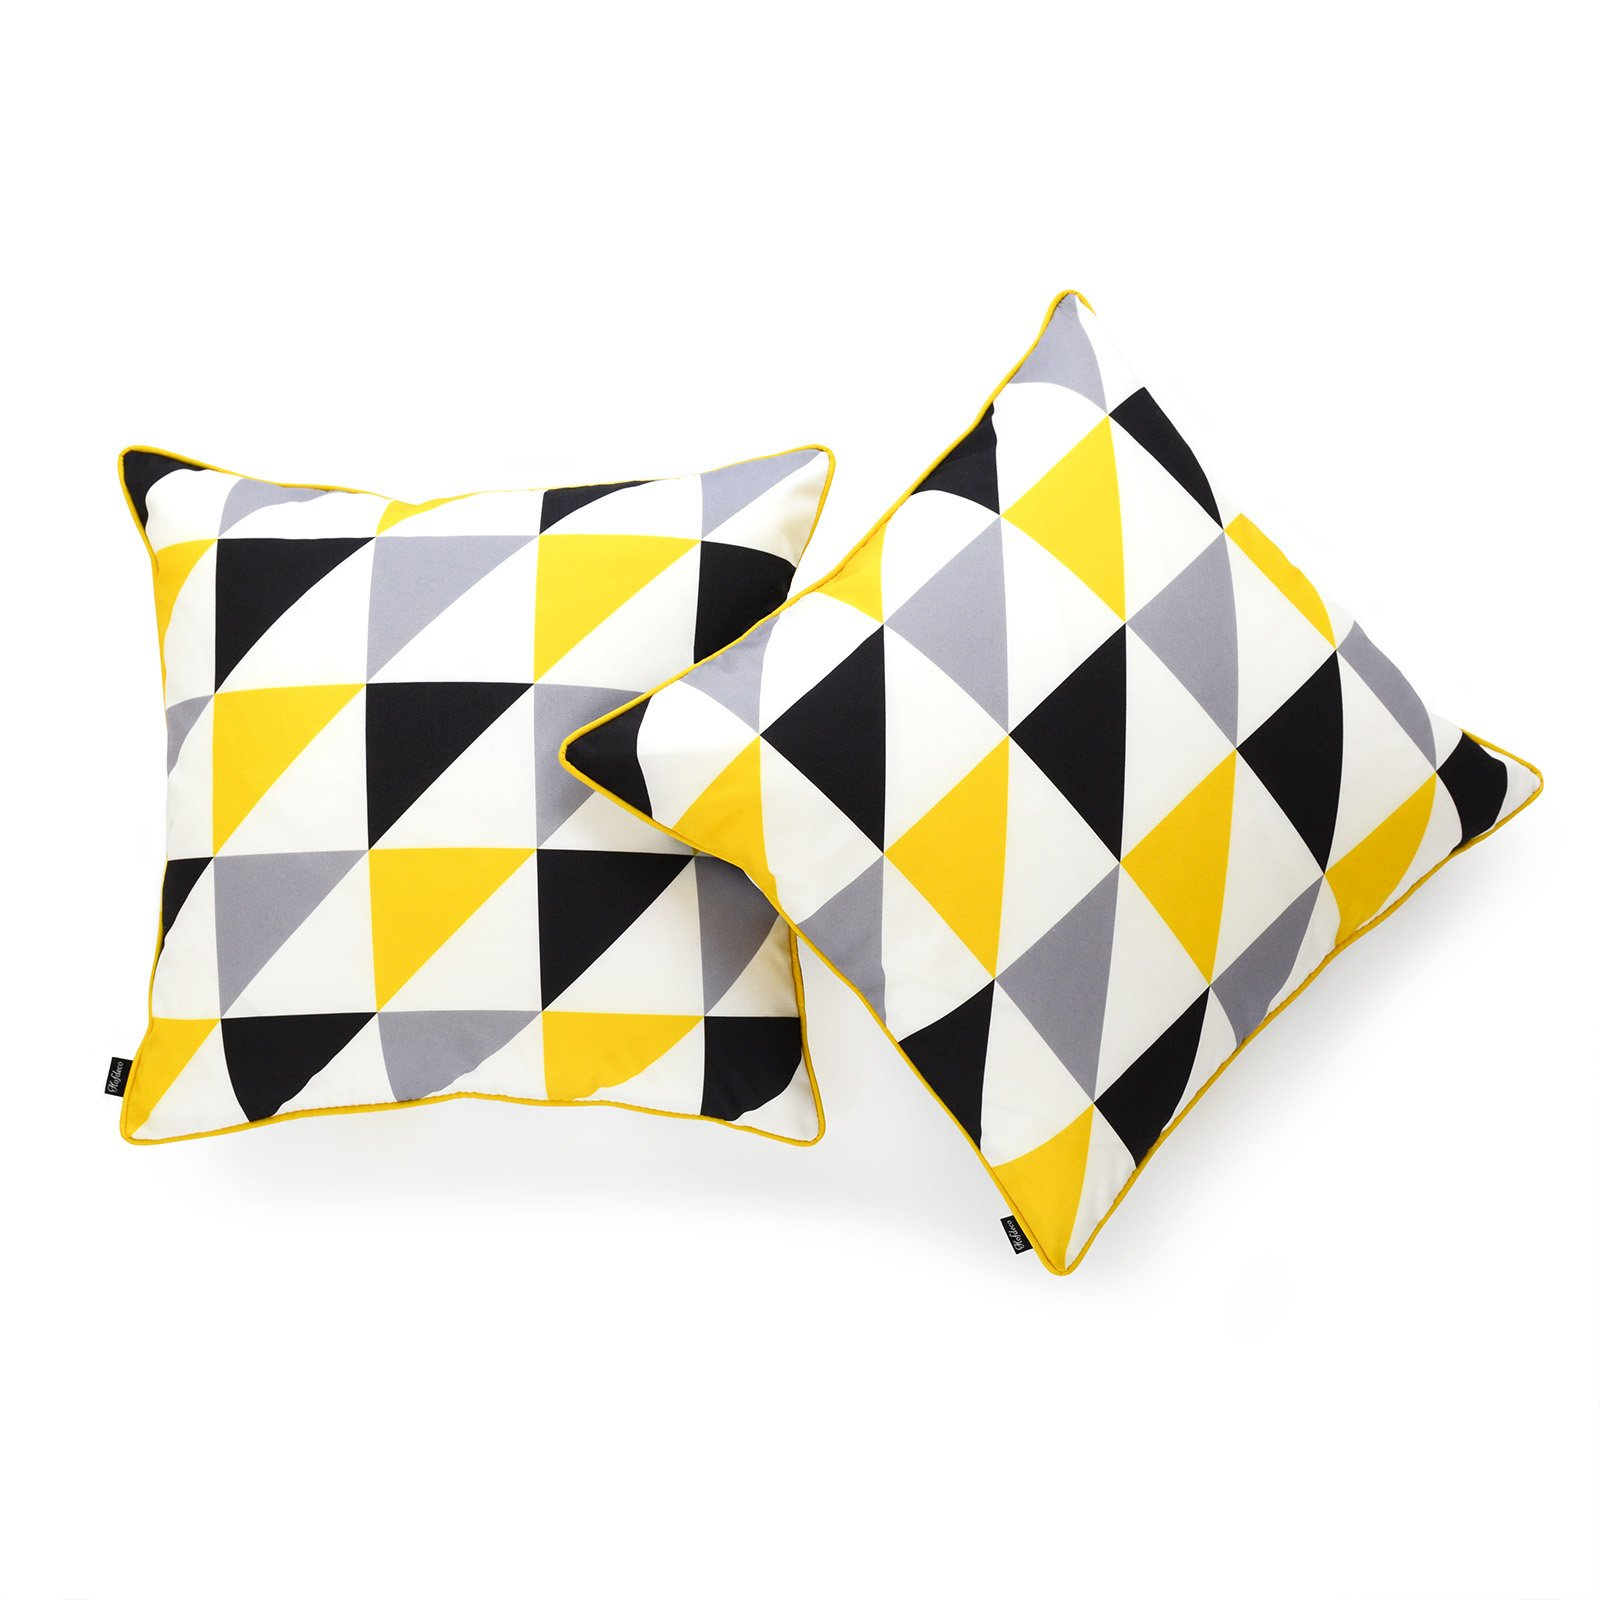 Hofdeco Decorative Throw Pillow Cover INDOOR OUTDOOR WATER RESISTANT Canvas Vivid Yellow Grey Black Triangle 18''x18'' Set of 2